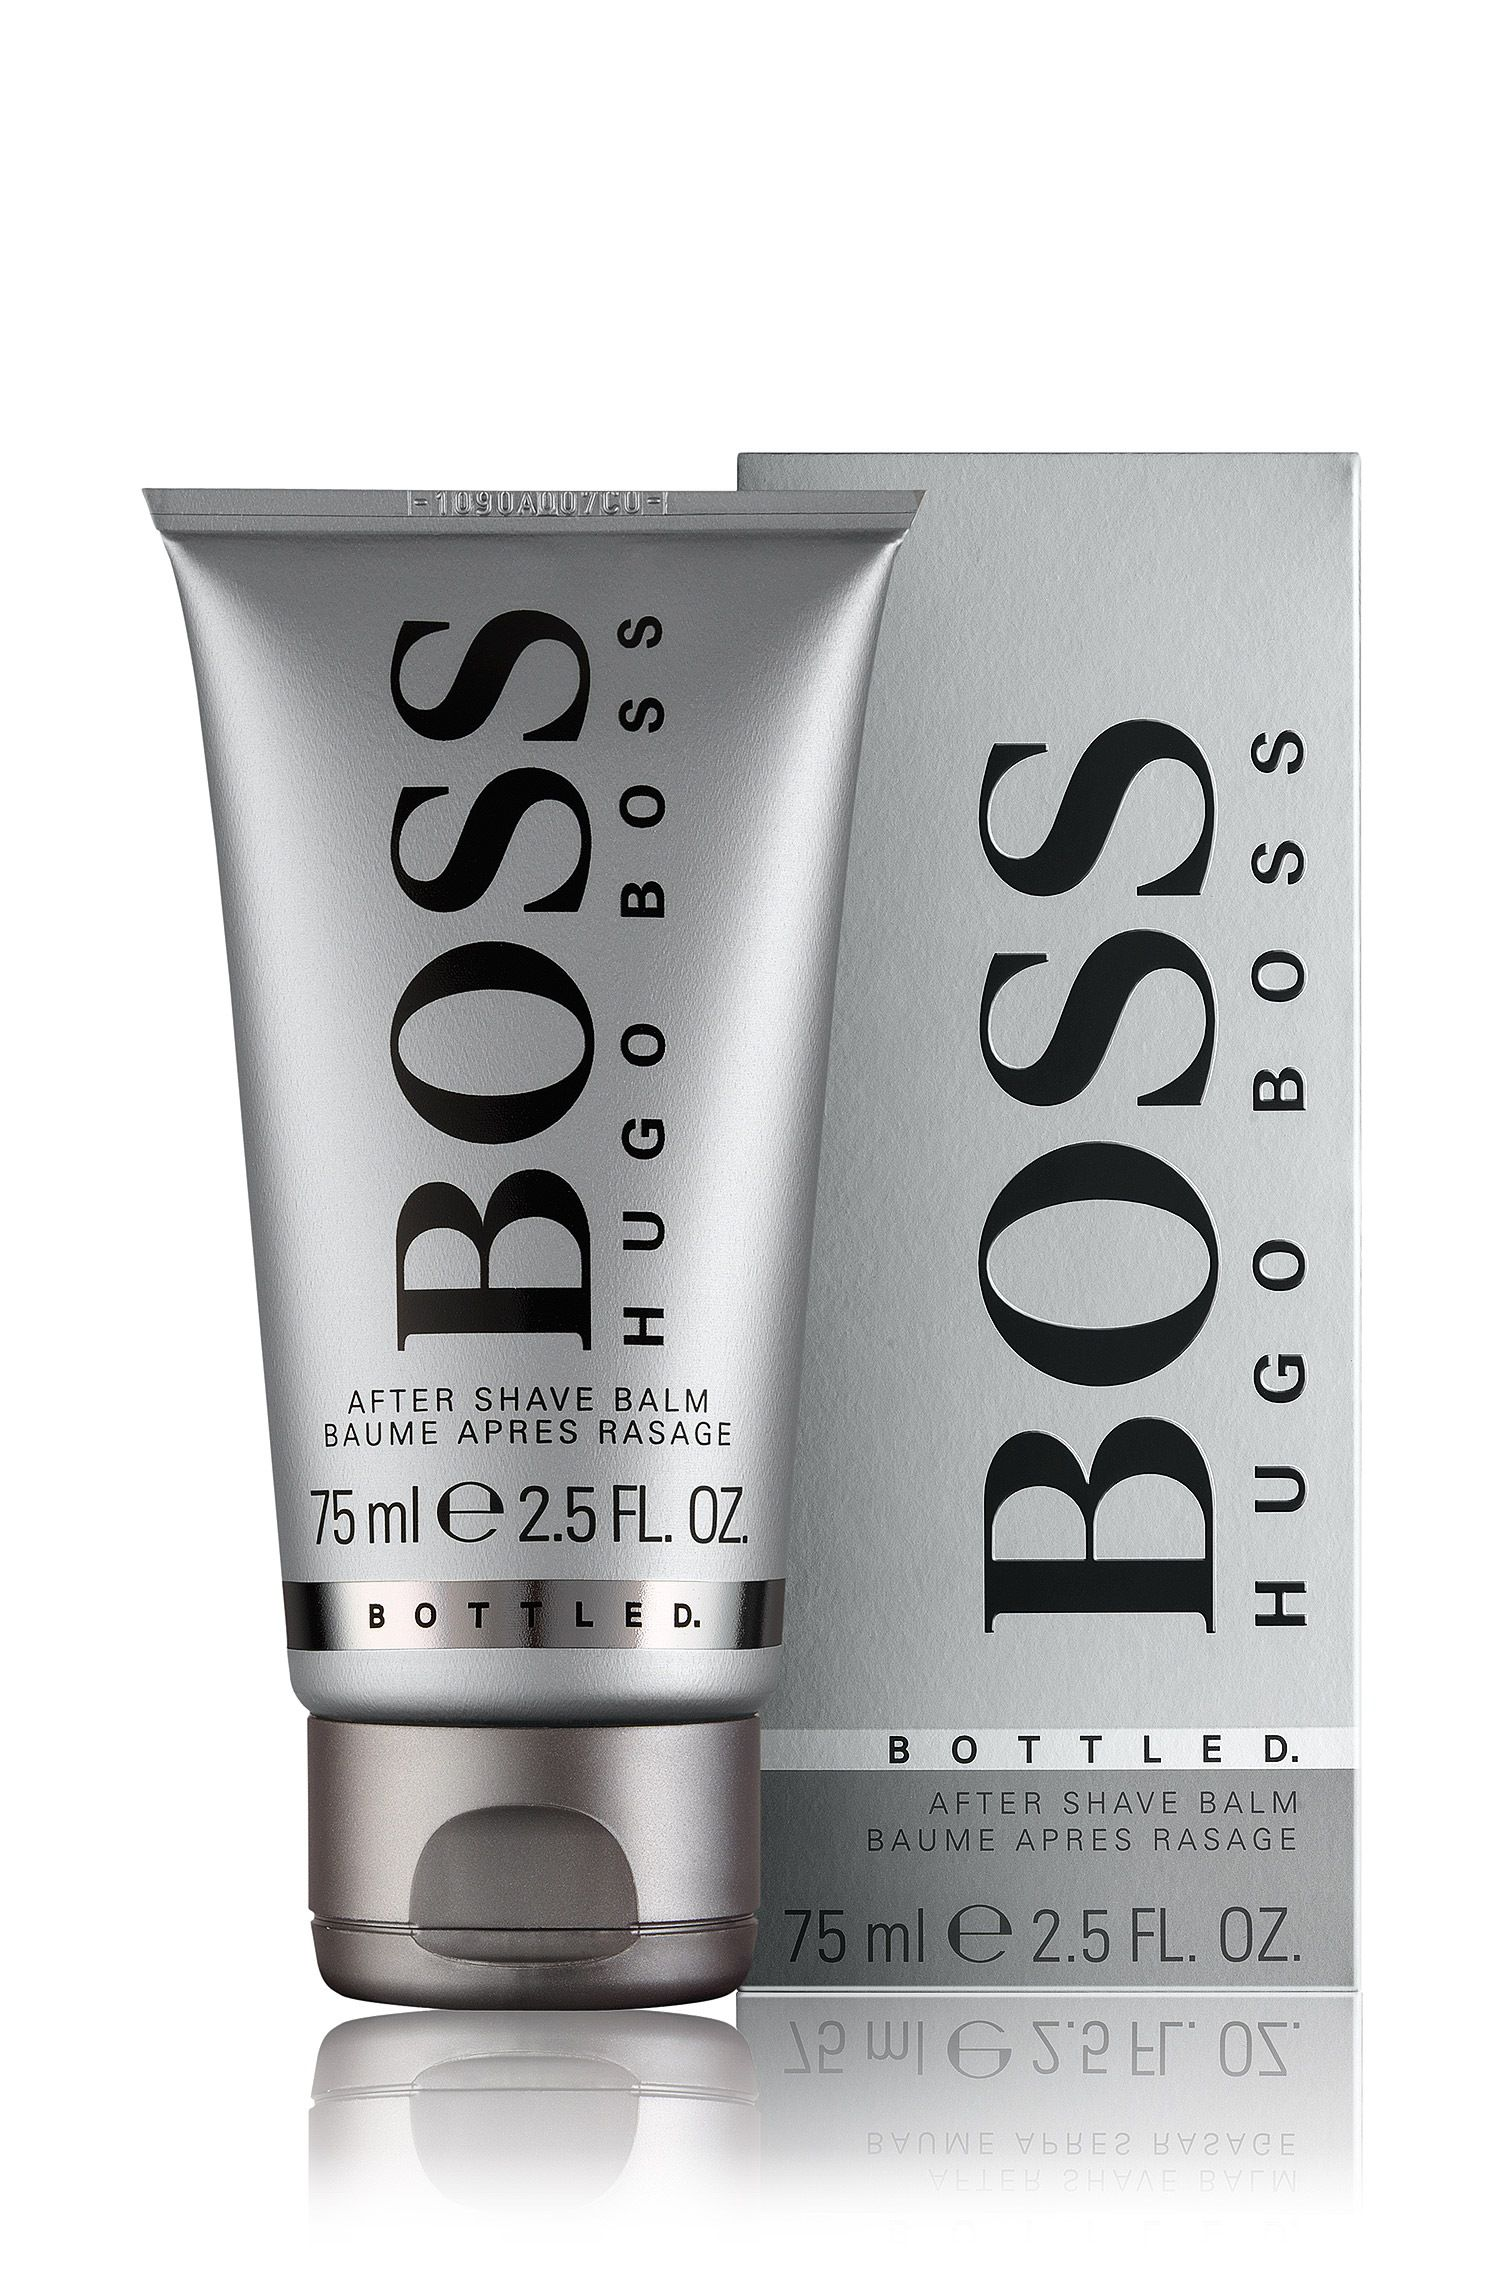 Bálsamo aftershave BOSS Bottled de 75 ml, Assorted-Pre-Pack